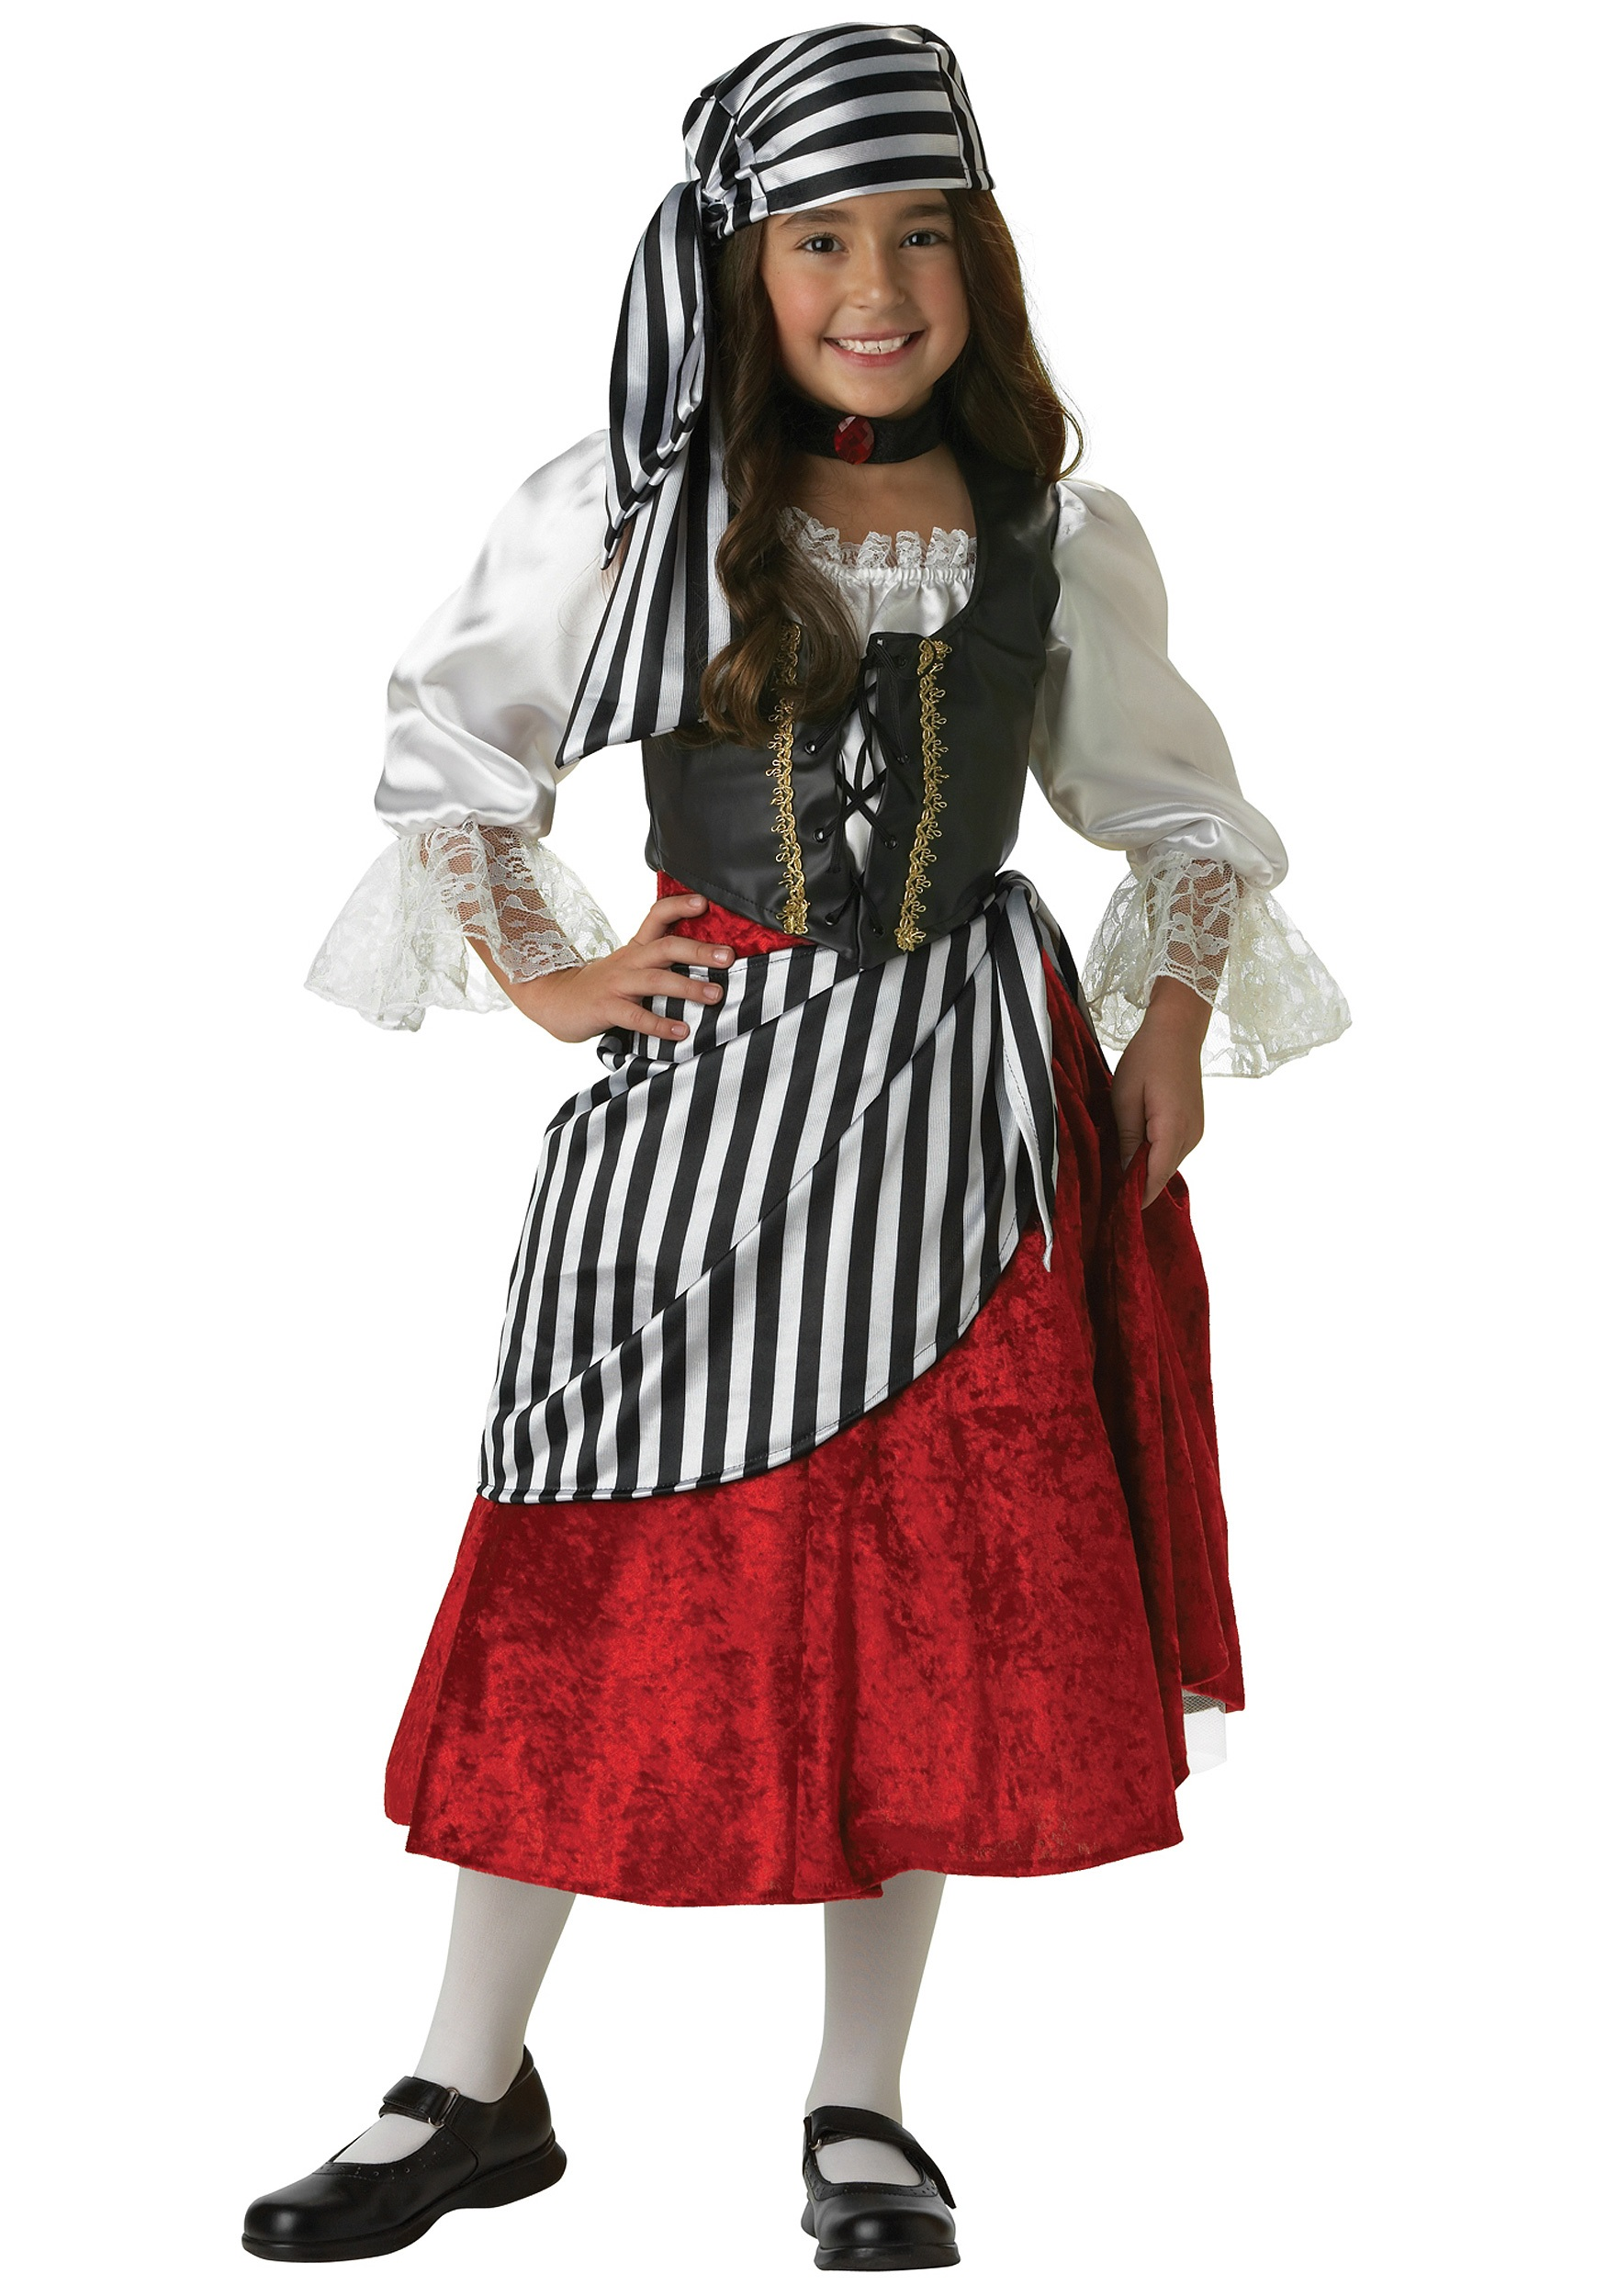 Rebel Pirate Girl Costume  sc 1 st  Halloween Costumes & Rebel Pirate Girl Costume - Halloween Costumes